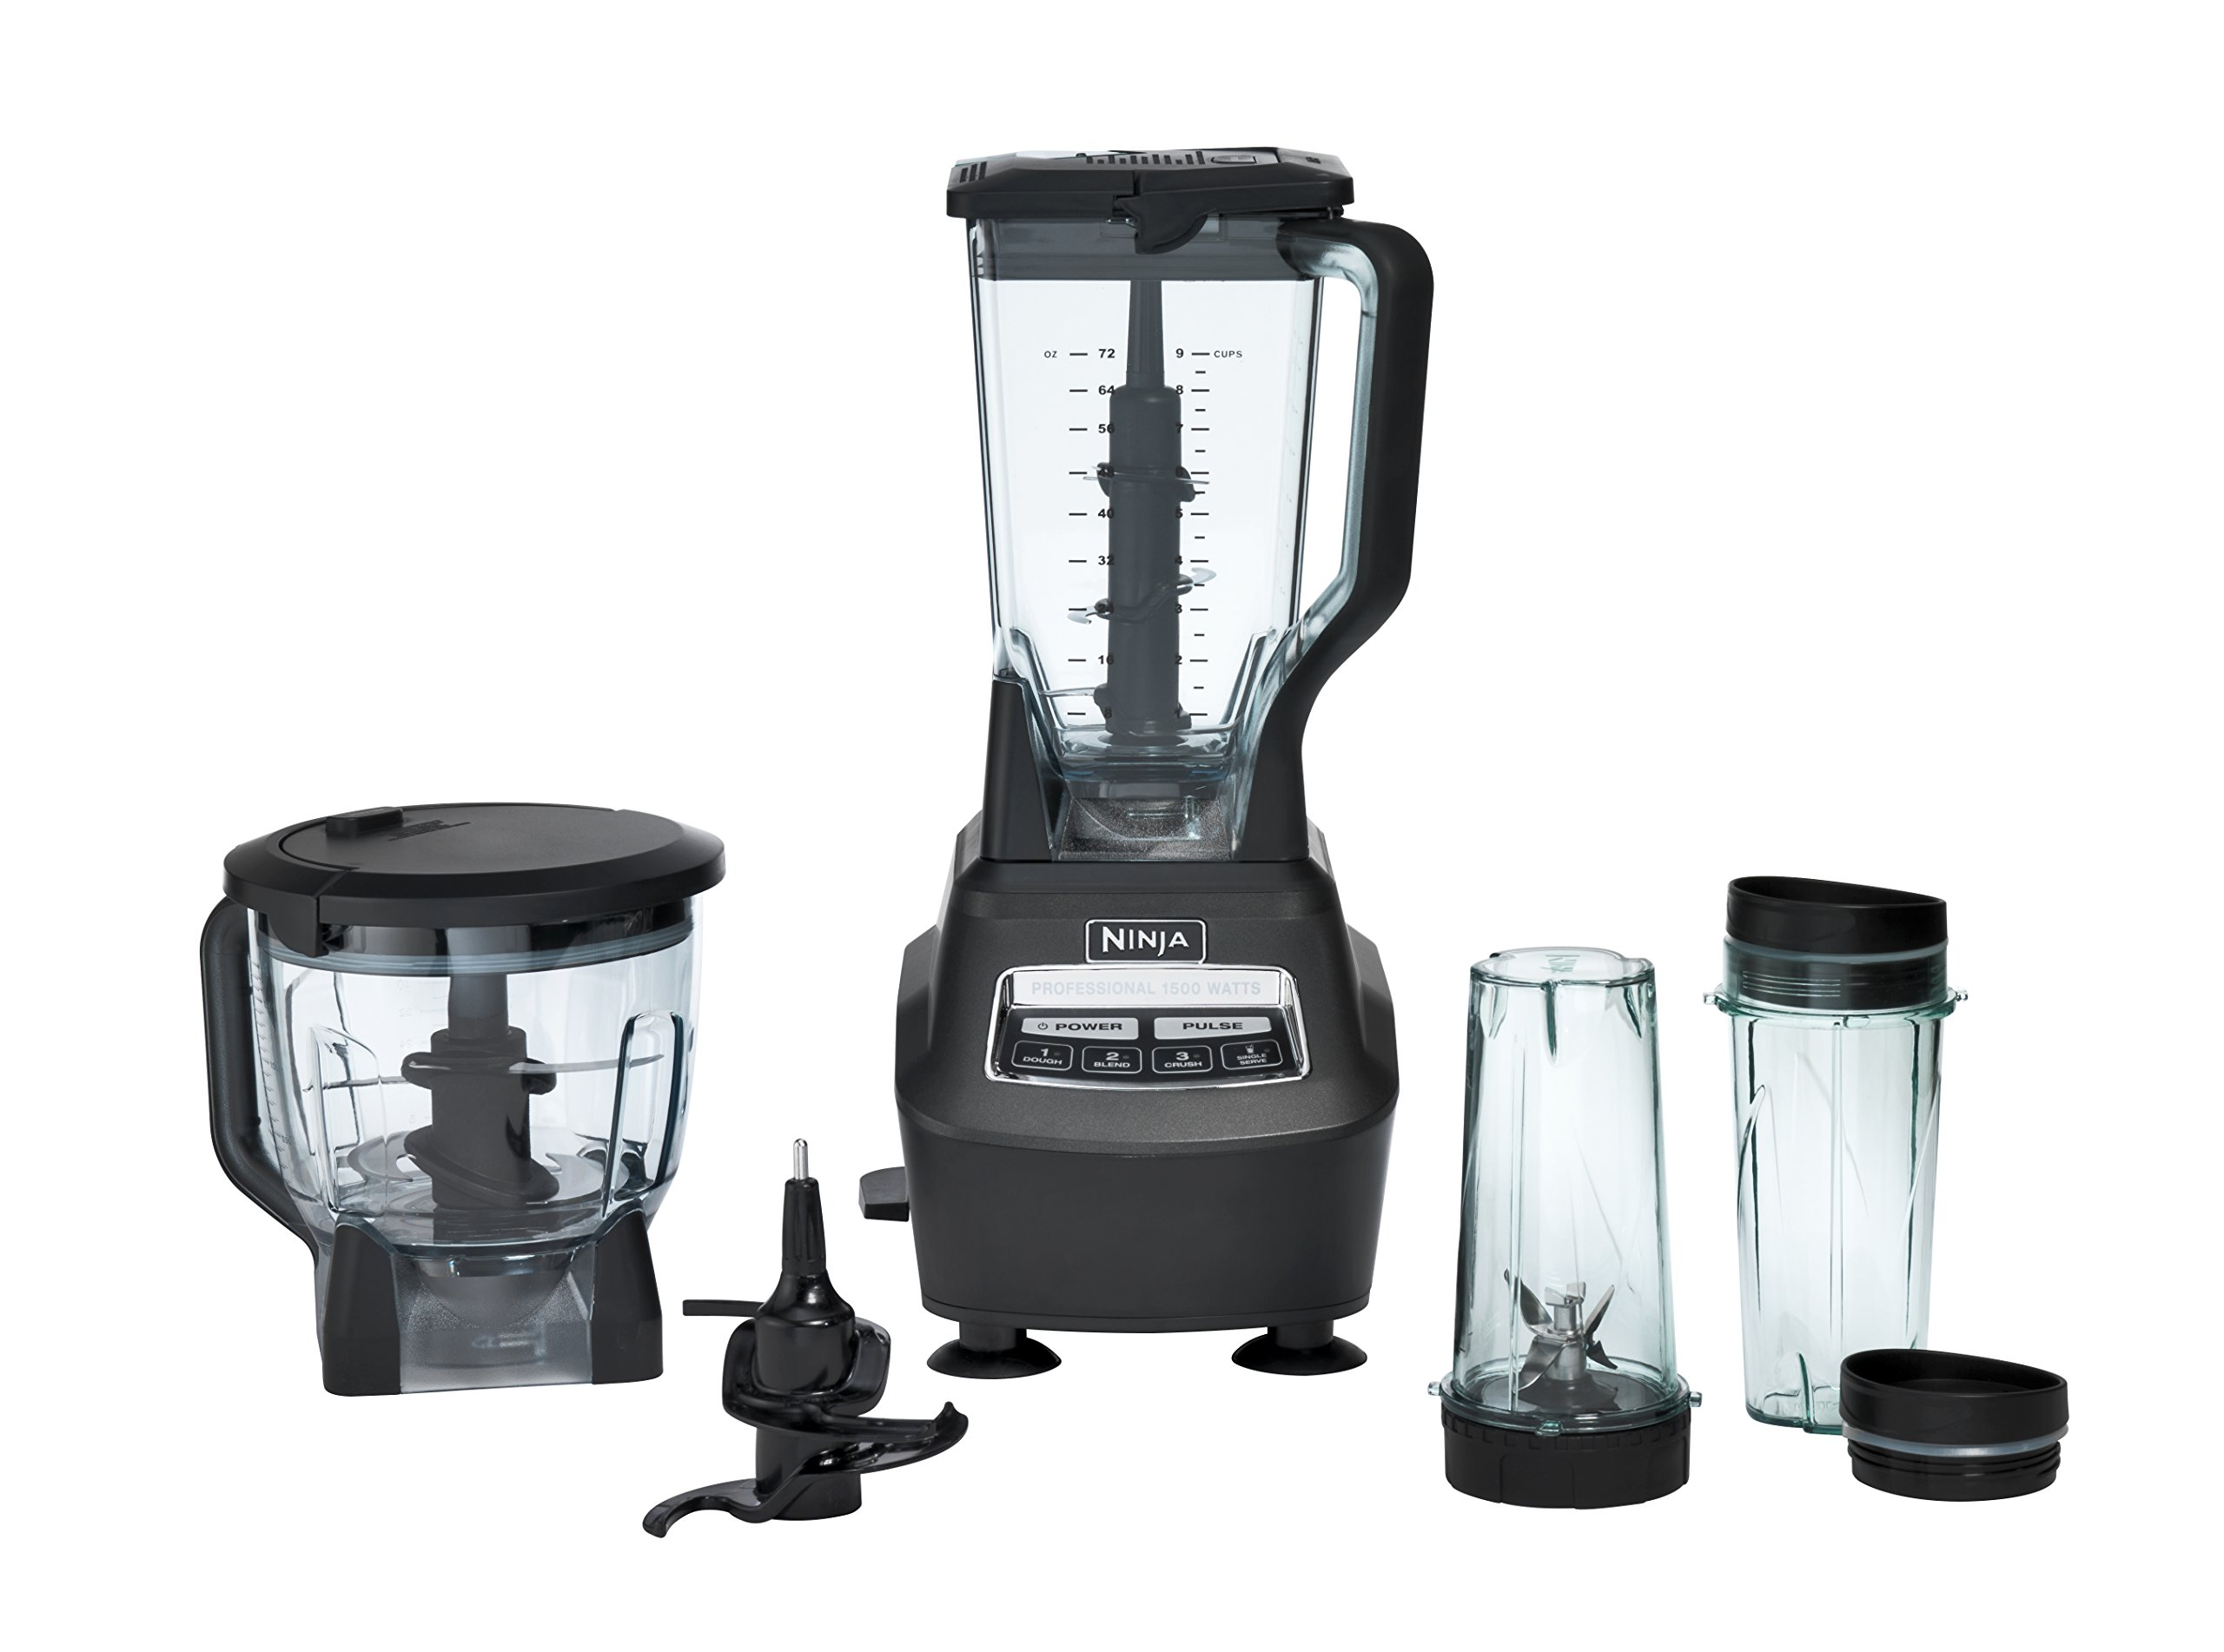 Ninja Mega Kitchen System Bl770 Blender Food Processor With 1500w Auto Iq Base 72oz Pitcher 64oz Processor Bowl 2 16oz Cup For Smoothies Dough More Amazon Sg Home